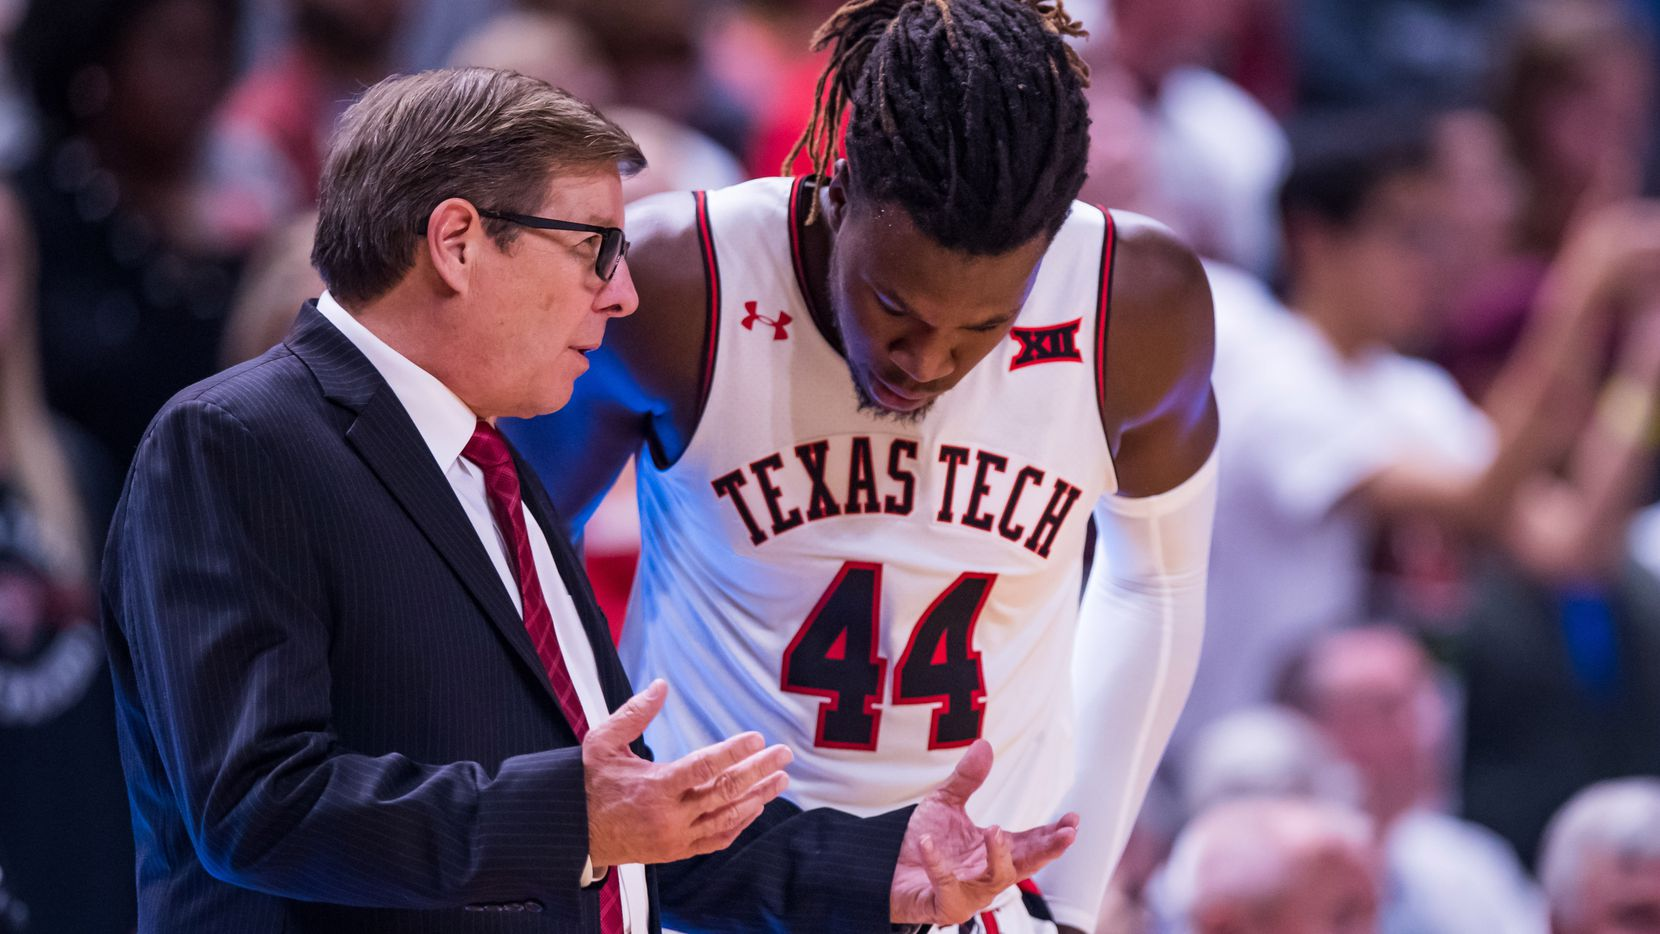 Associate head coach Mark Adams and forward Chris Clarke #44 of the Texas Tech Red Raiders talk on the sideline during the second half of the college basketball game against the Tennessee State Tigers on November 21, 2019 at United Supermarkets Arena in Lubbock, Texas. (Photo by John E. Moore III/Getty Images)